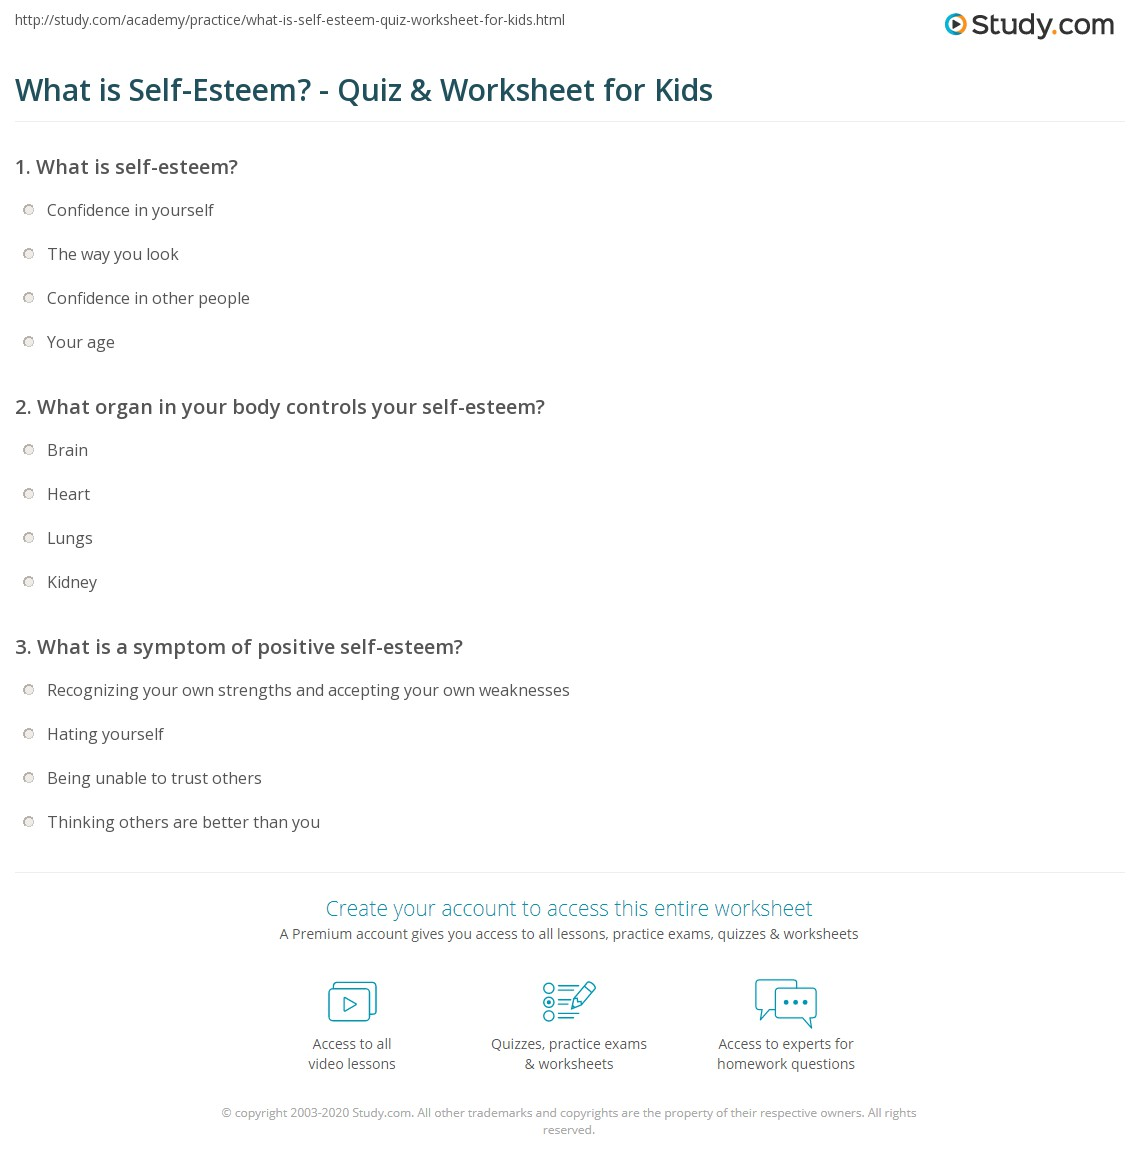 Worksheets Low Self Esteem Worksheets what is self esteem quiz worksheet for kids study com print definition lesson worksheet